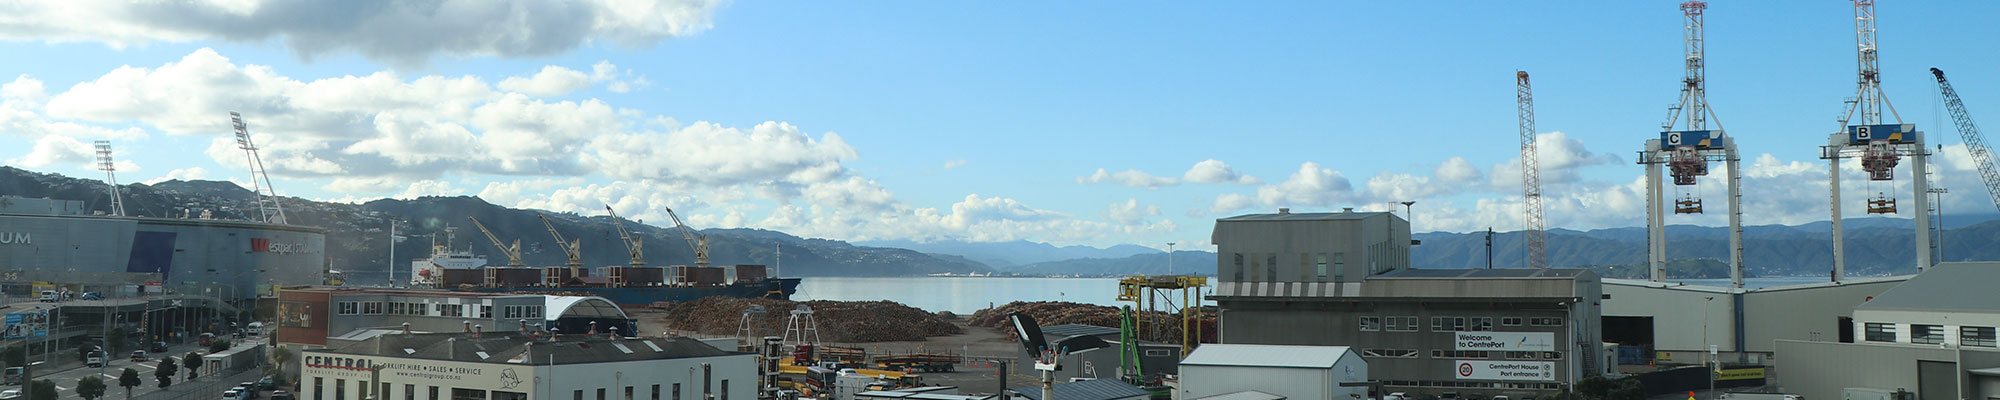 Wellington Port with logs for export